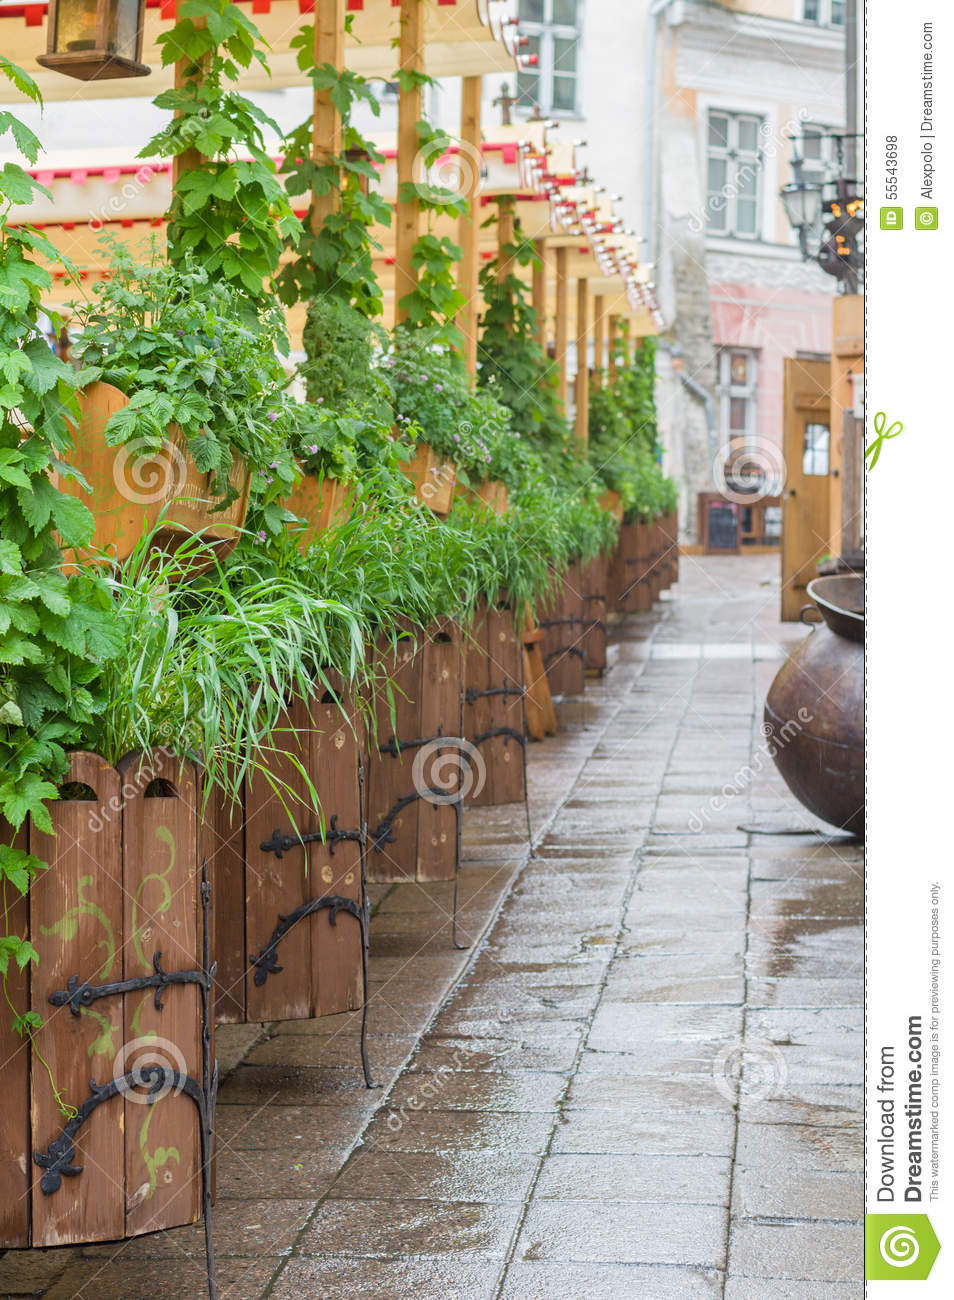 Scenic medieval style outdoor terrace with plants stock for Terrace plants